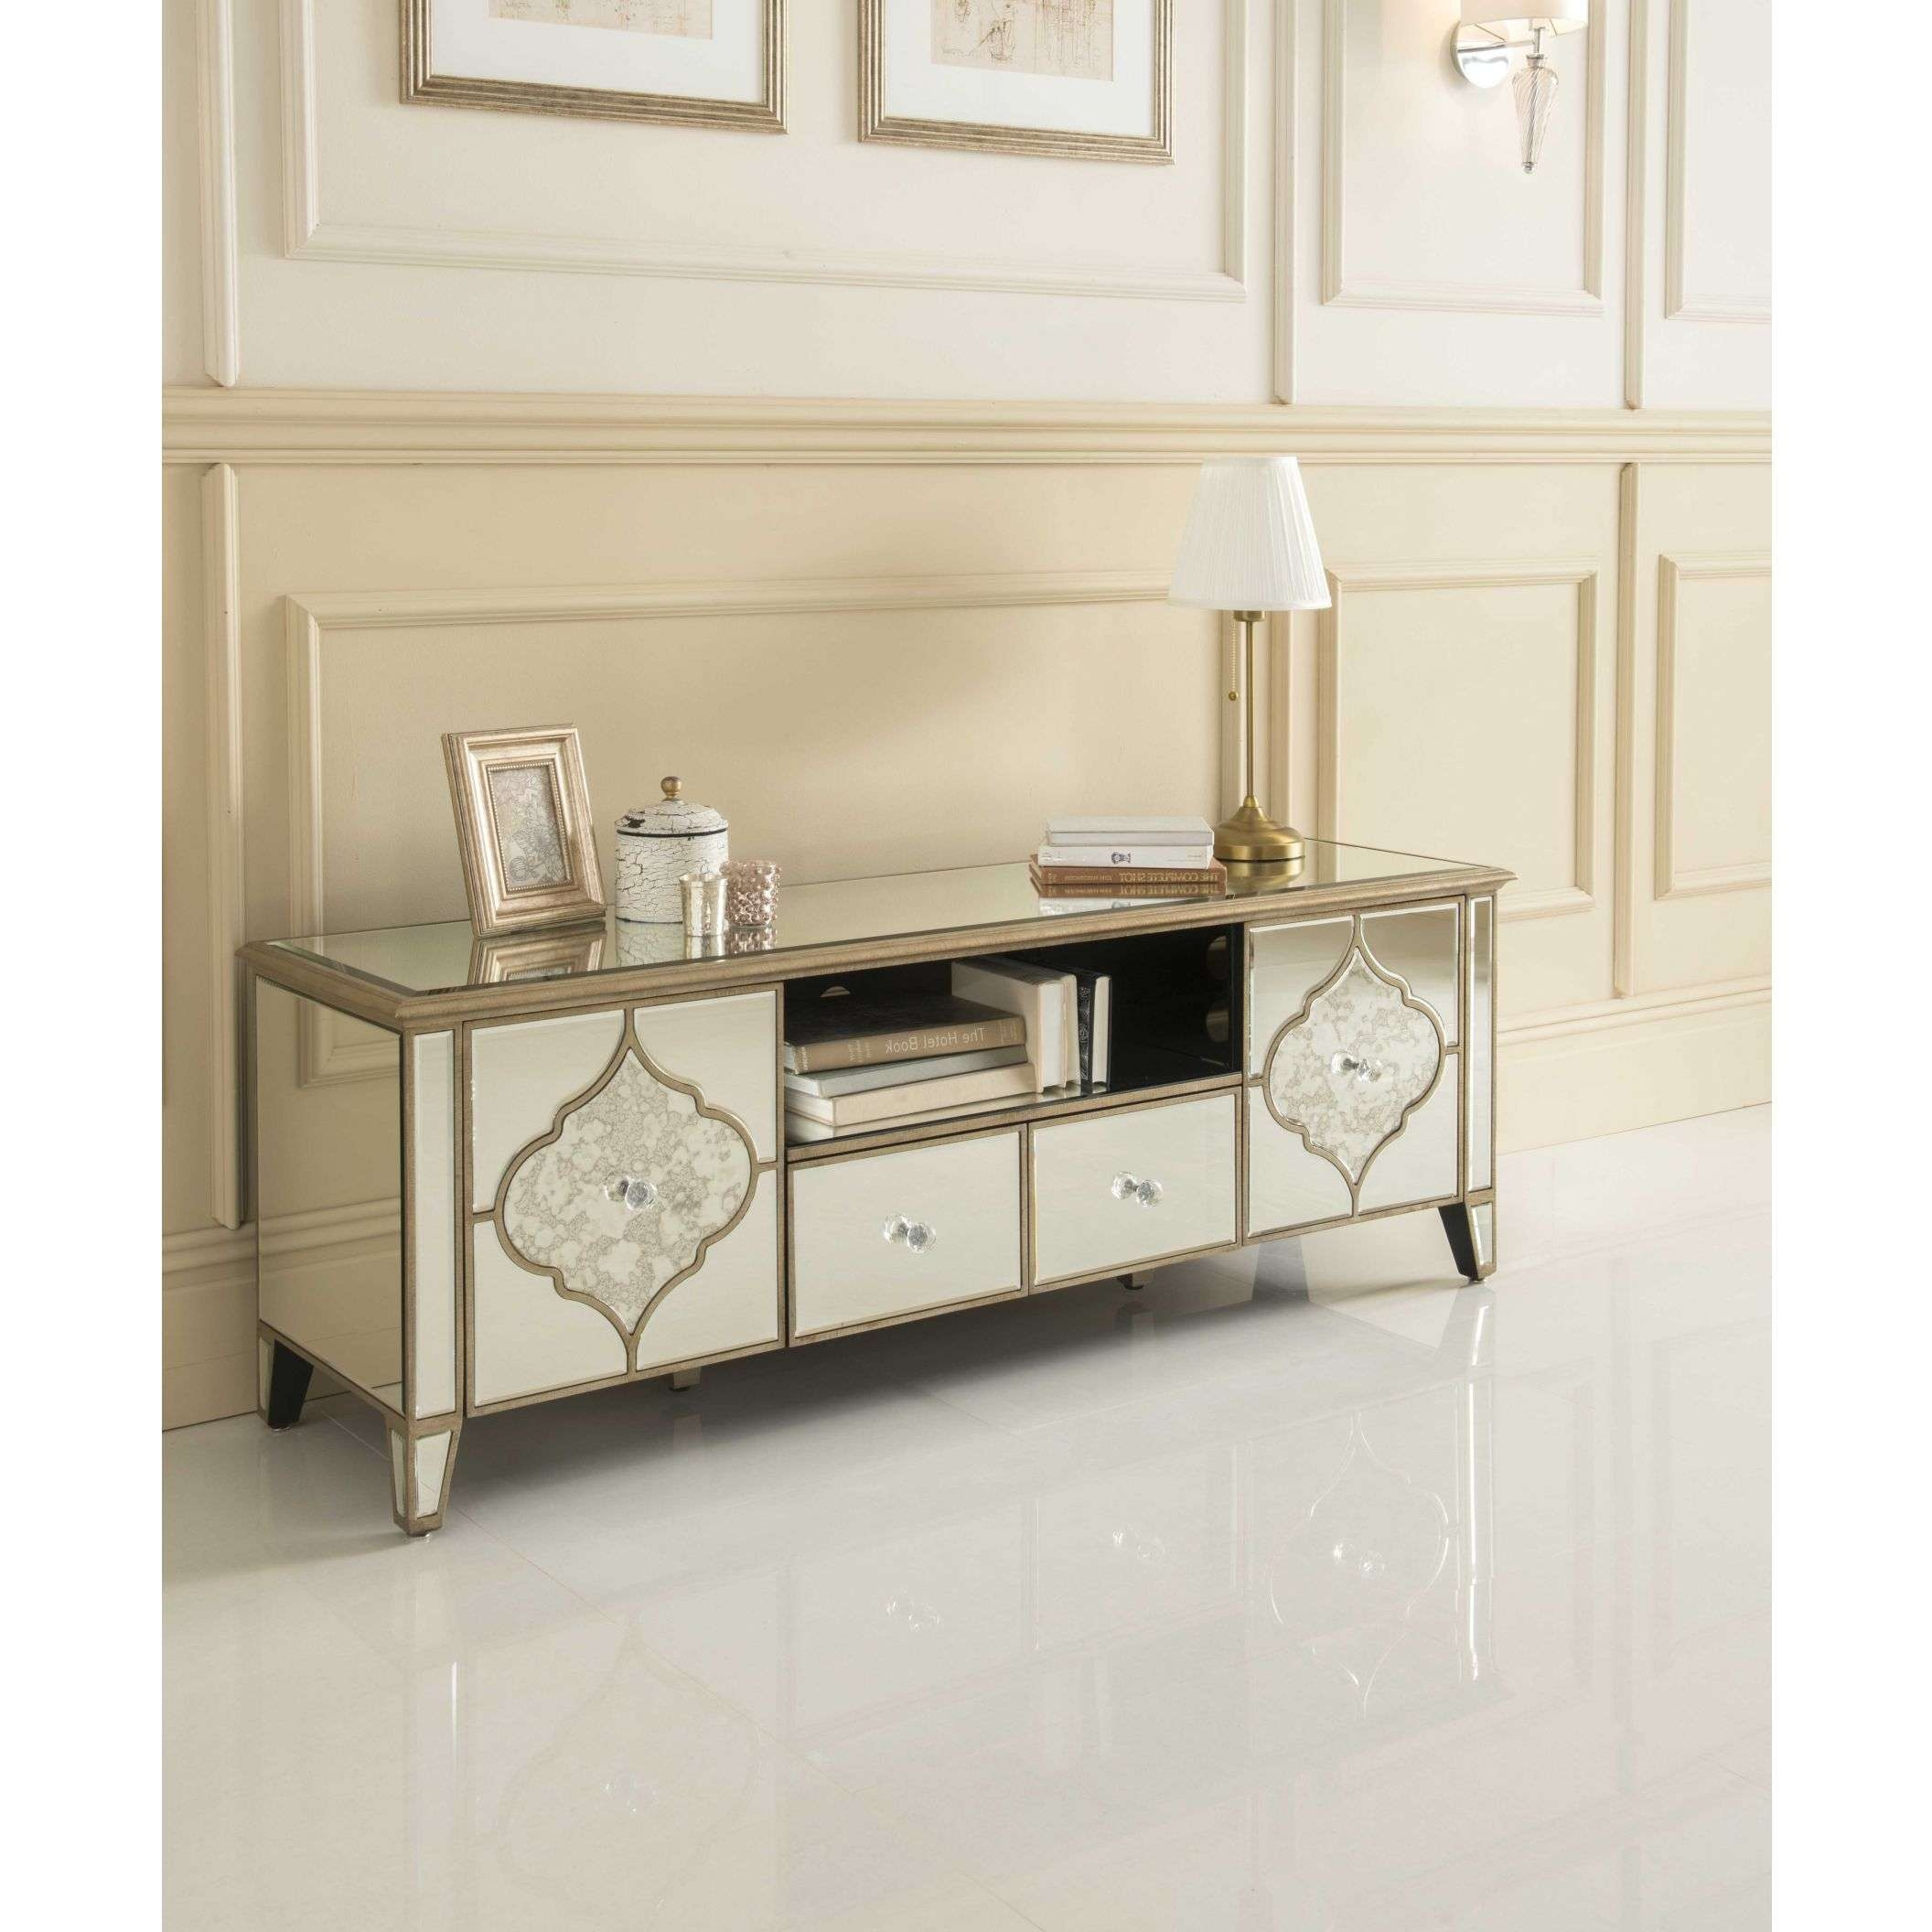 Sassari Mirrored Tv Cabinet | Glass Furniture Regarding Mirrored Tv Cabinets (View 5 of 20)